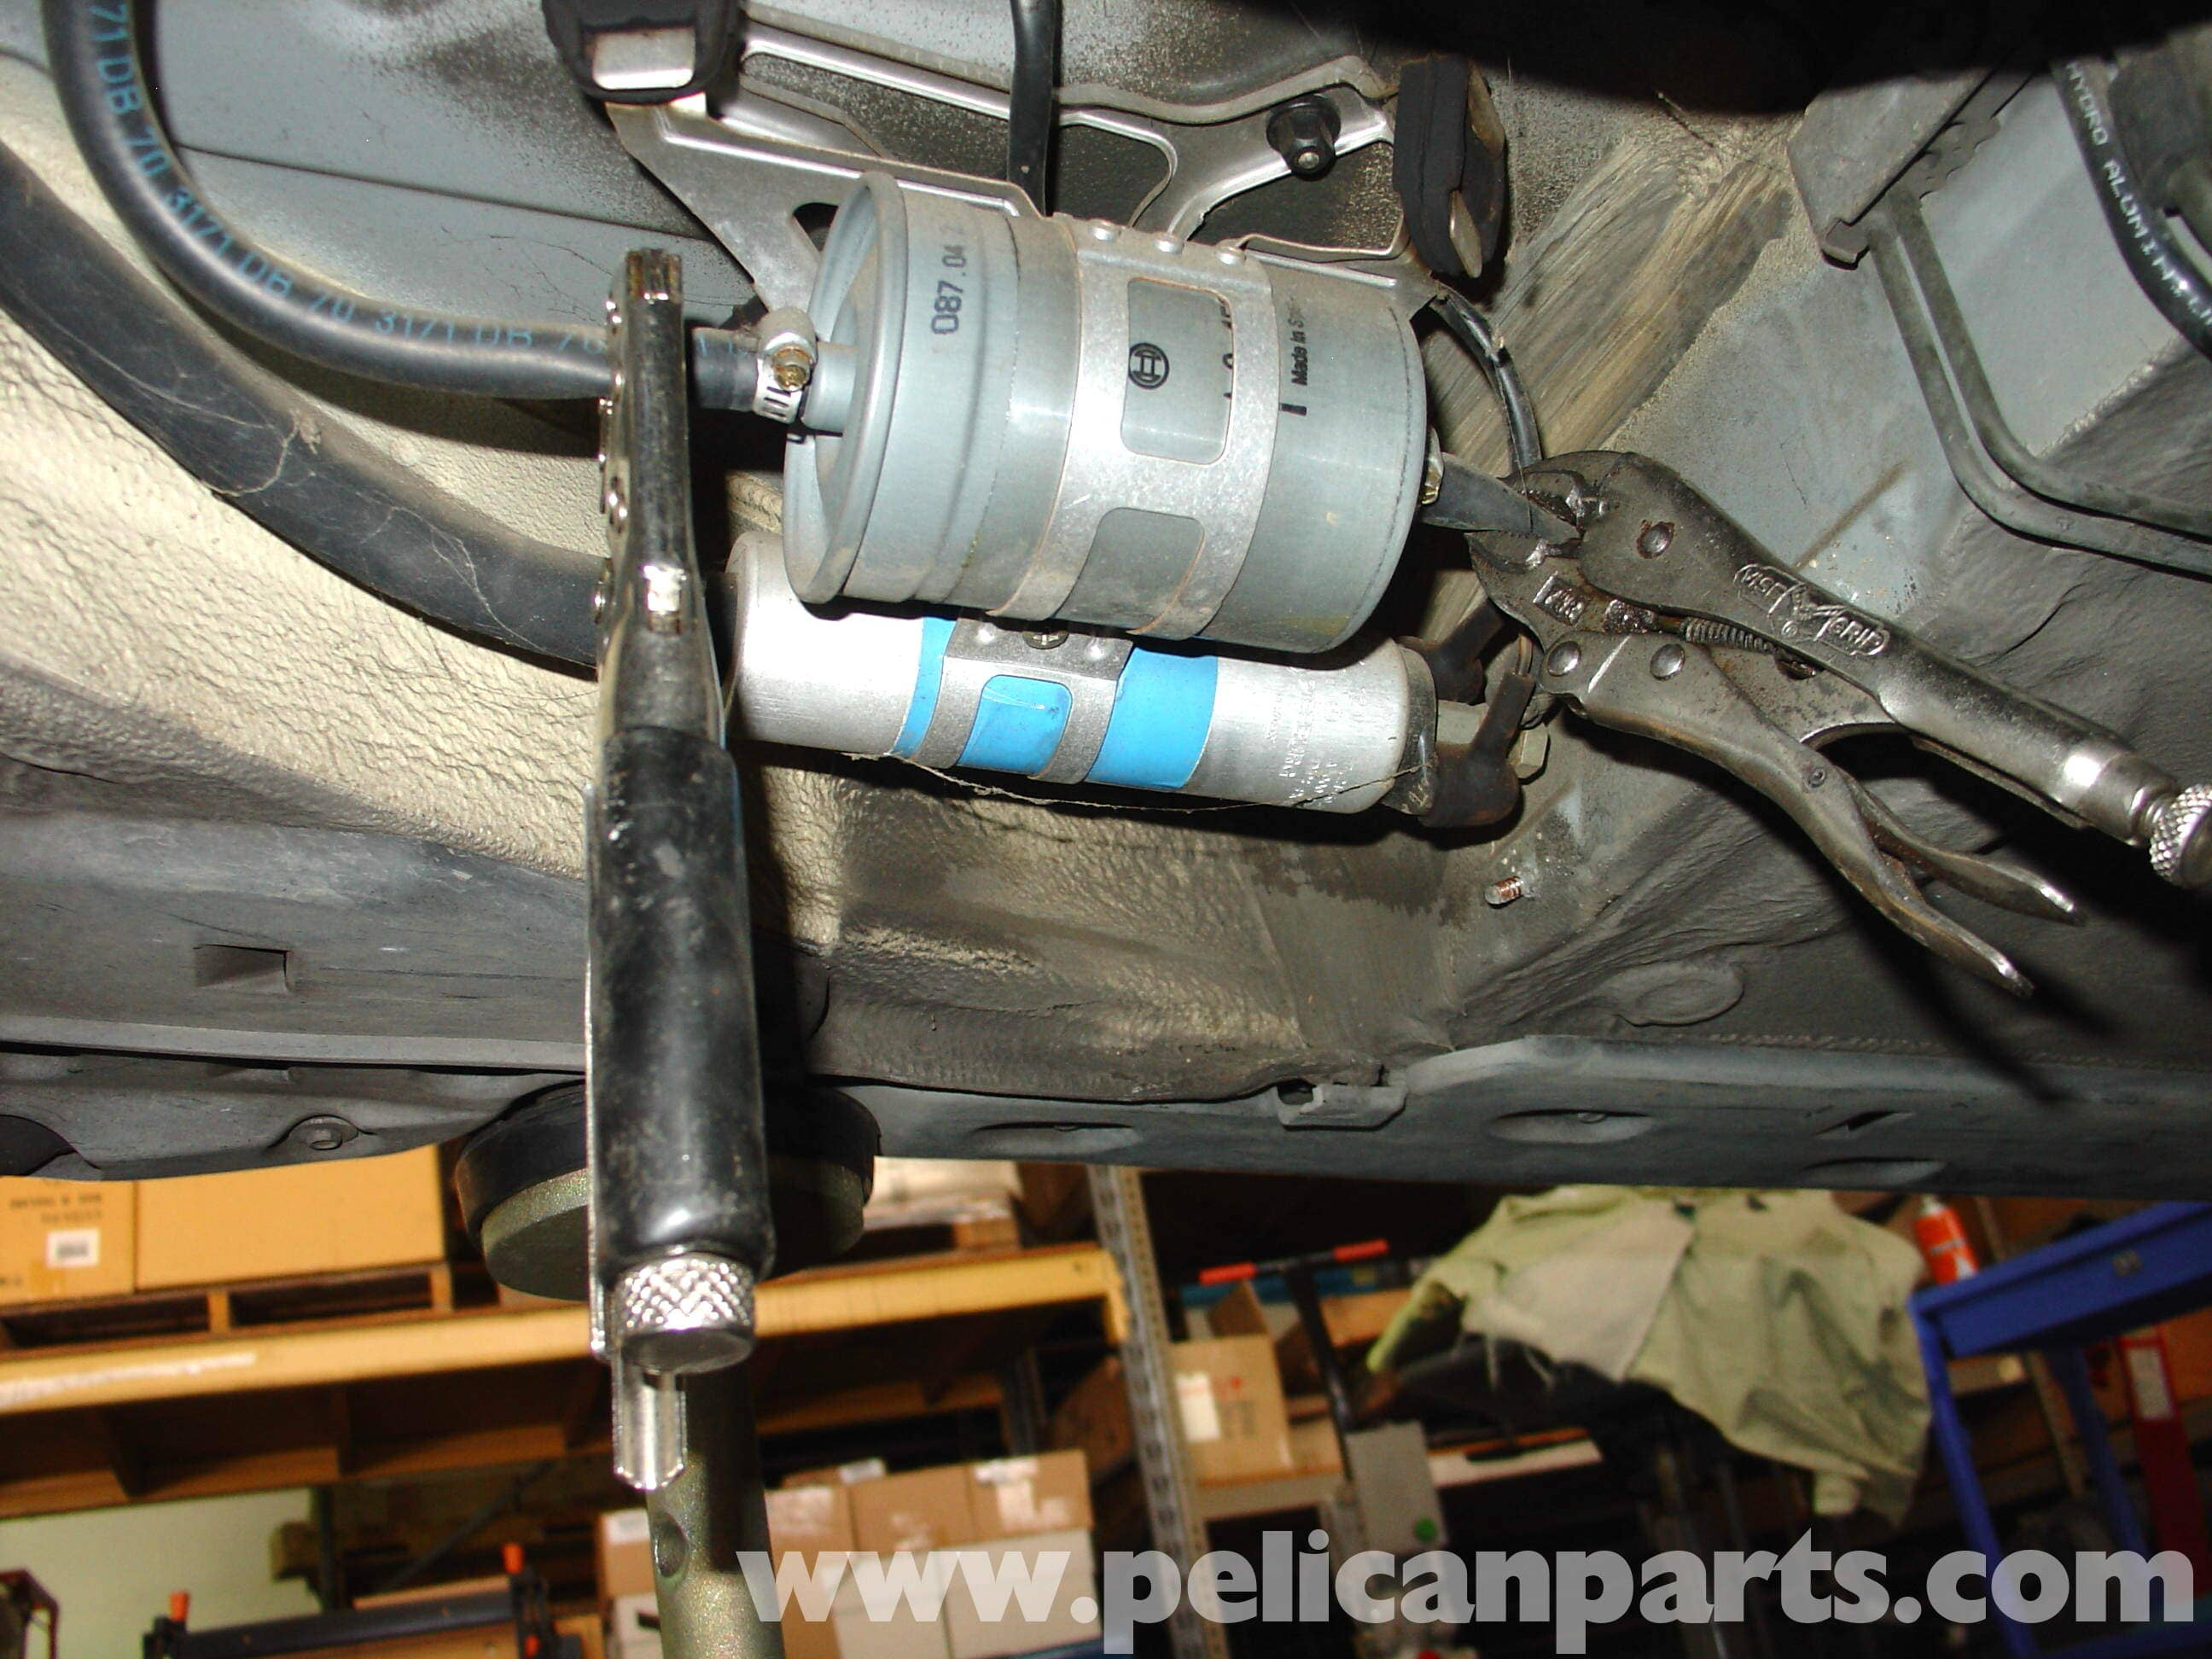 Fuel Filter 1995 Ram 1500 Manual E Books 2 5 Jeep 95 Wrangler Engine Diagram Dodge Location Wiring Diagram1995